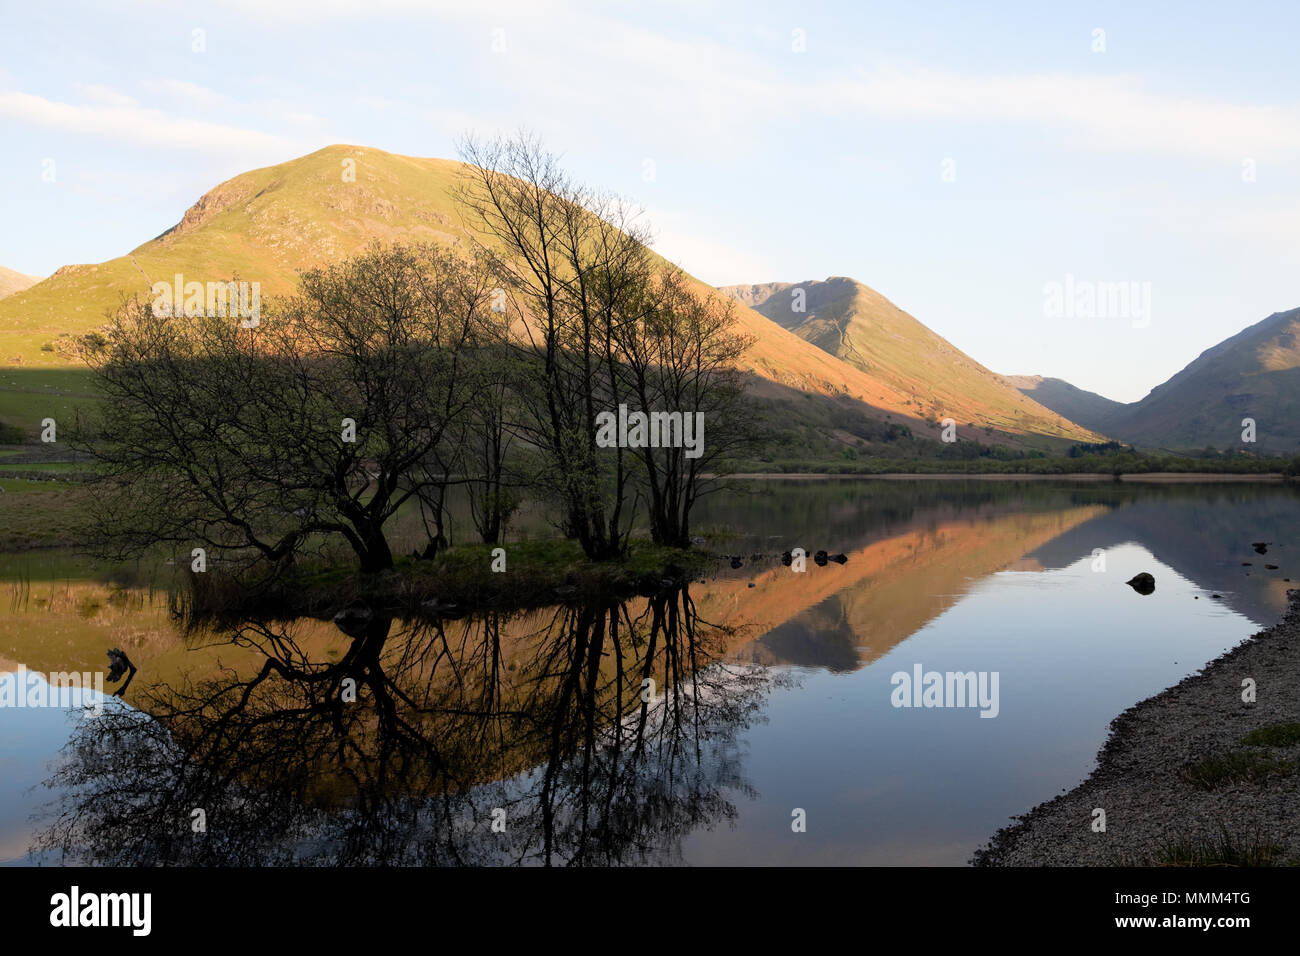 Reflections in Brothers Water, Hartsop, Lake District, UK - Stock Image